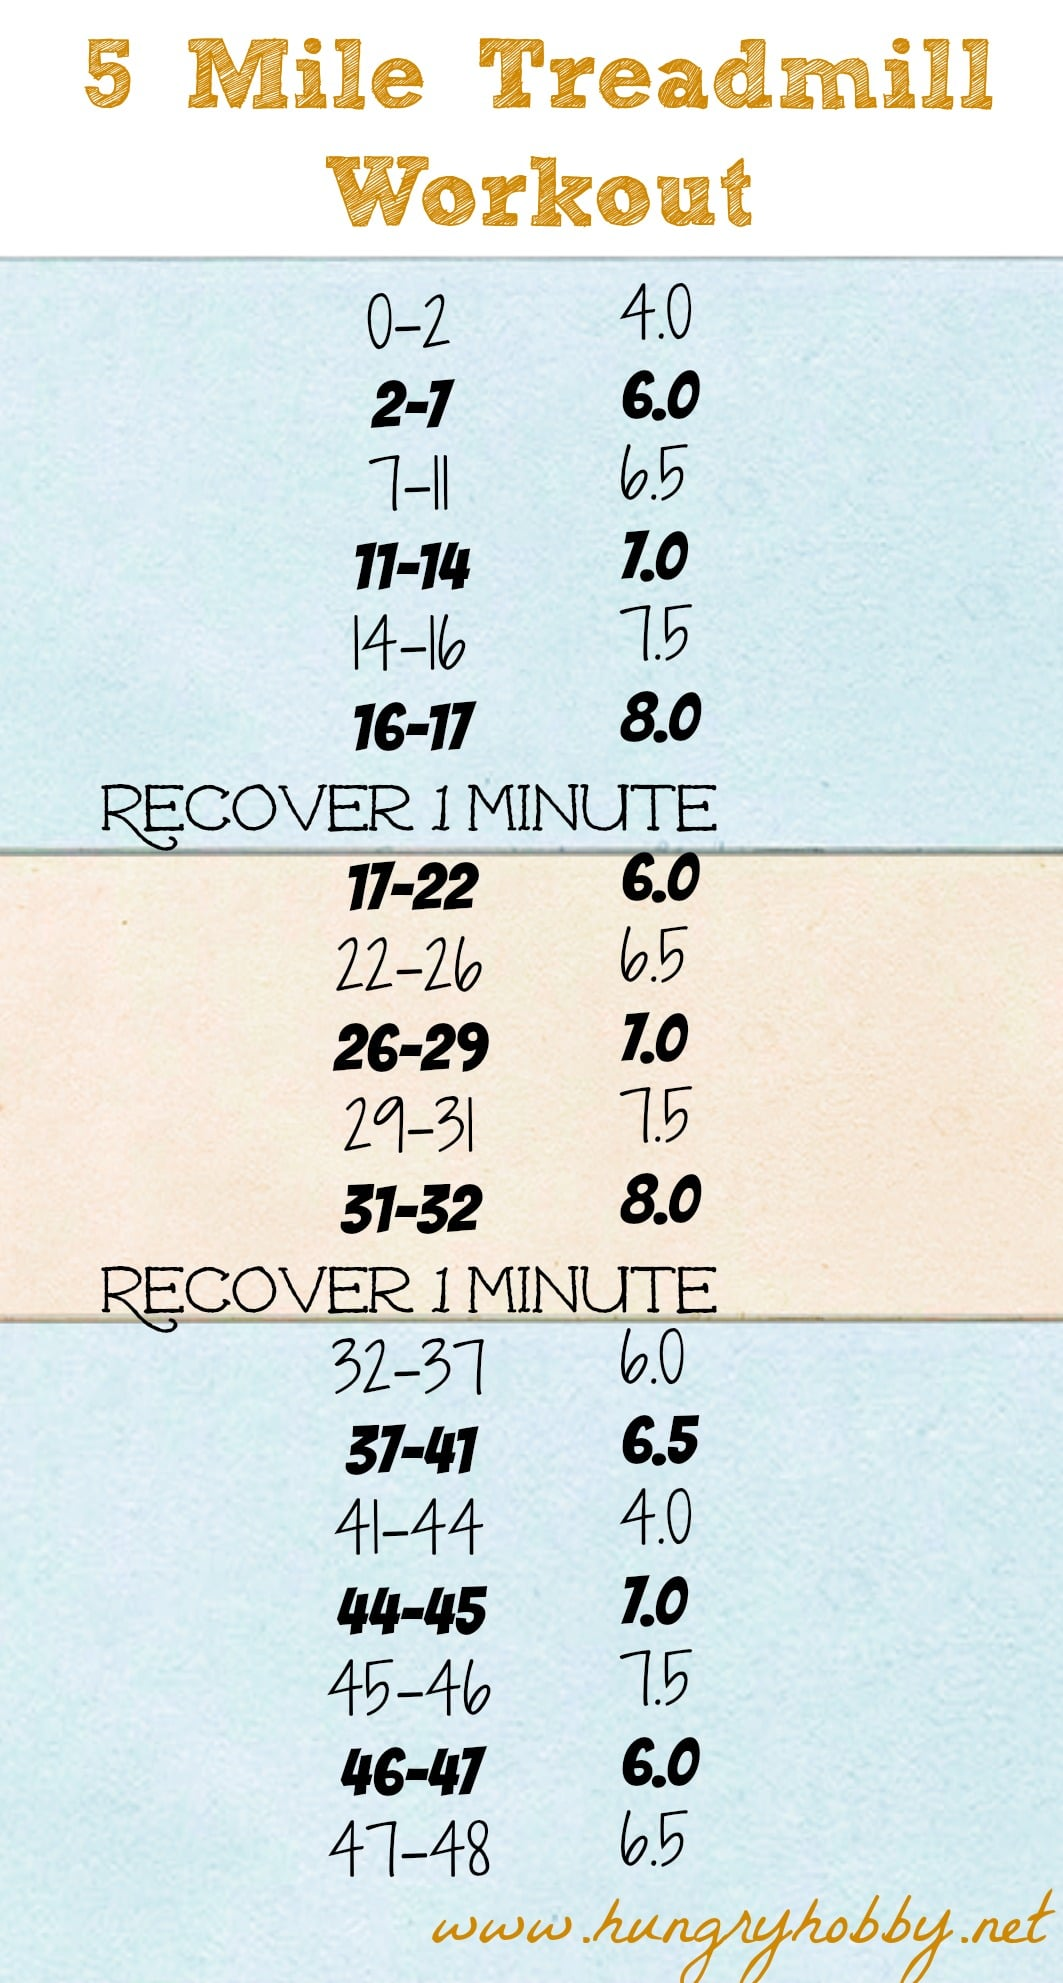 5 Mile Treadmill Workout